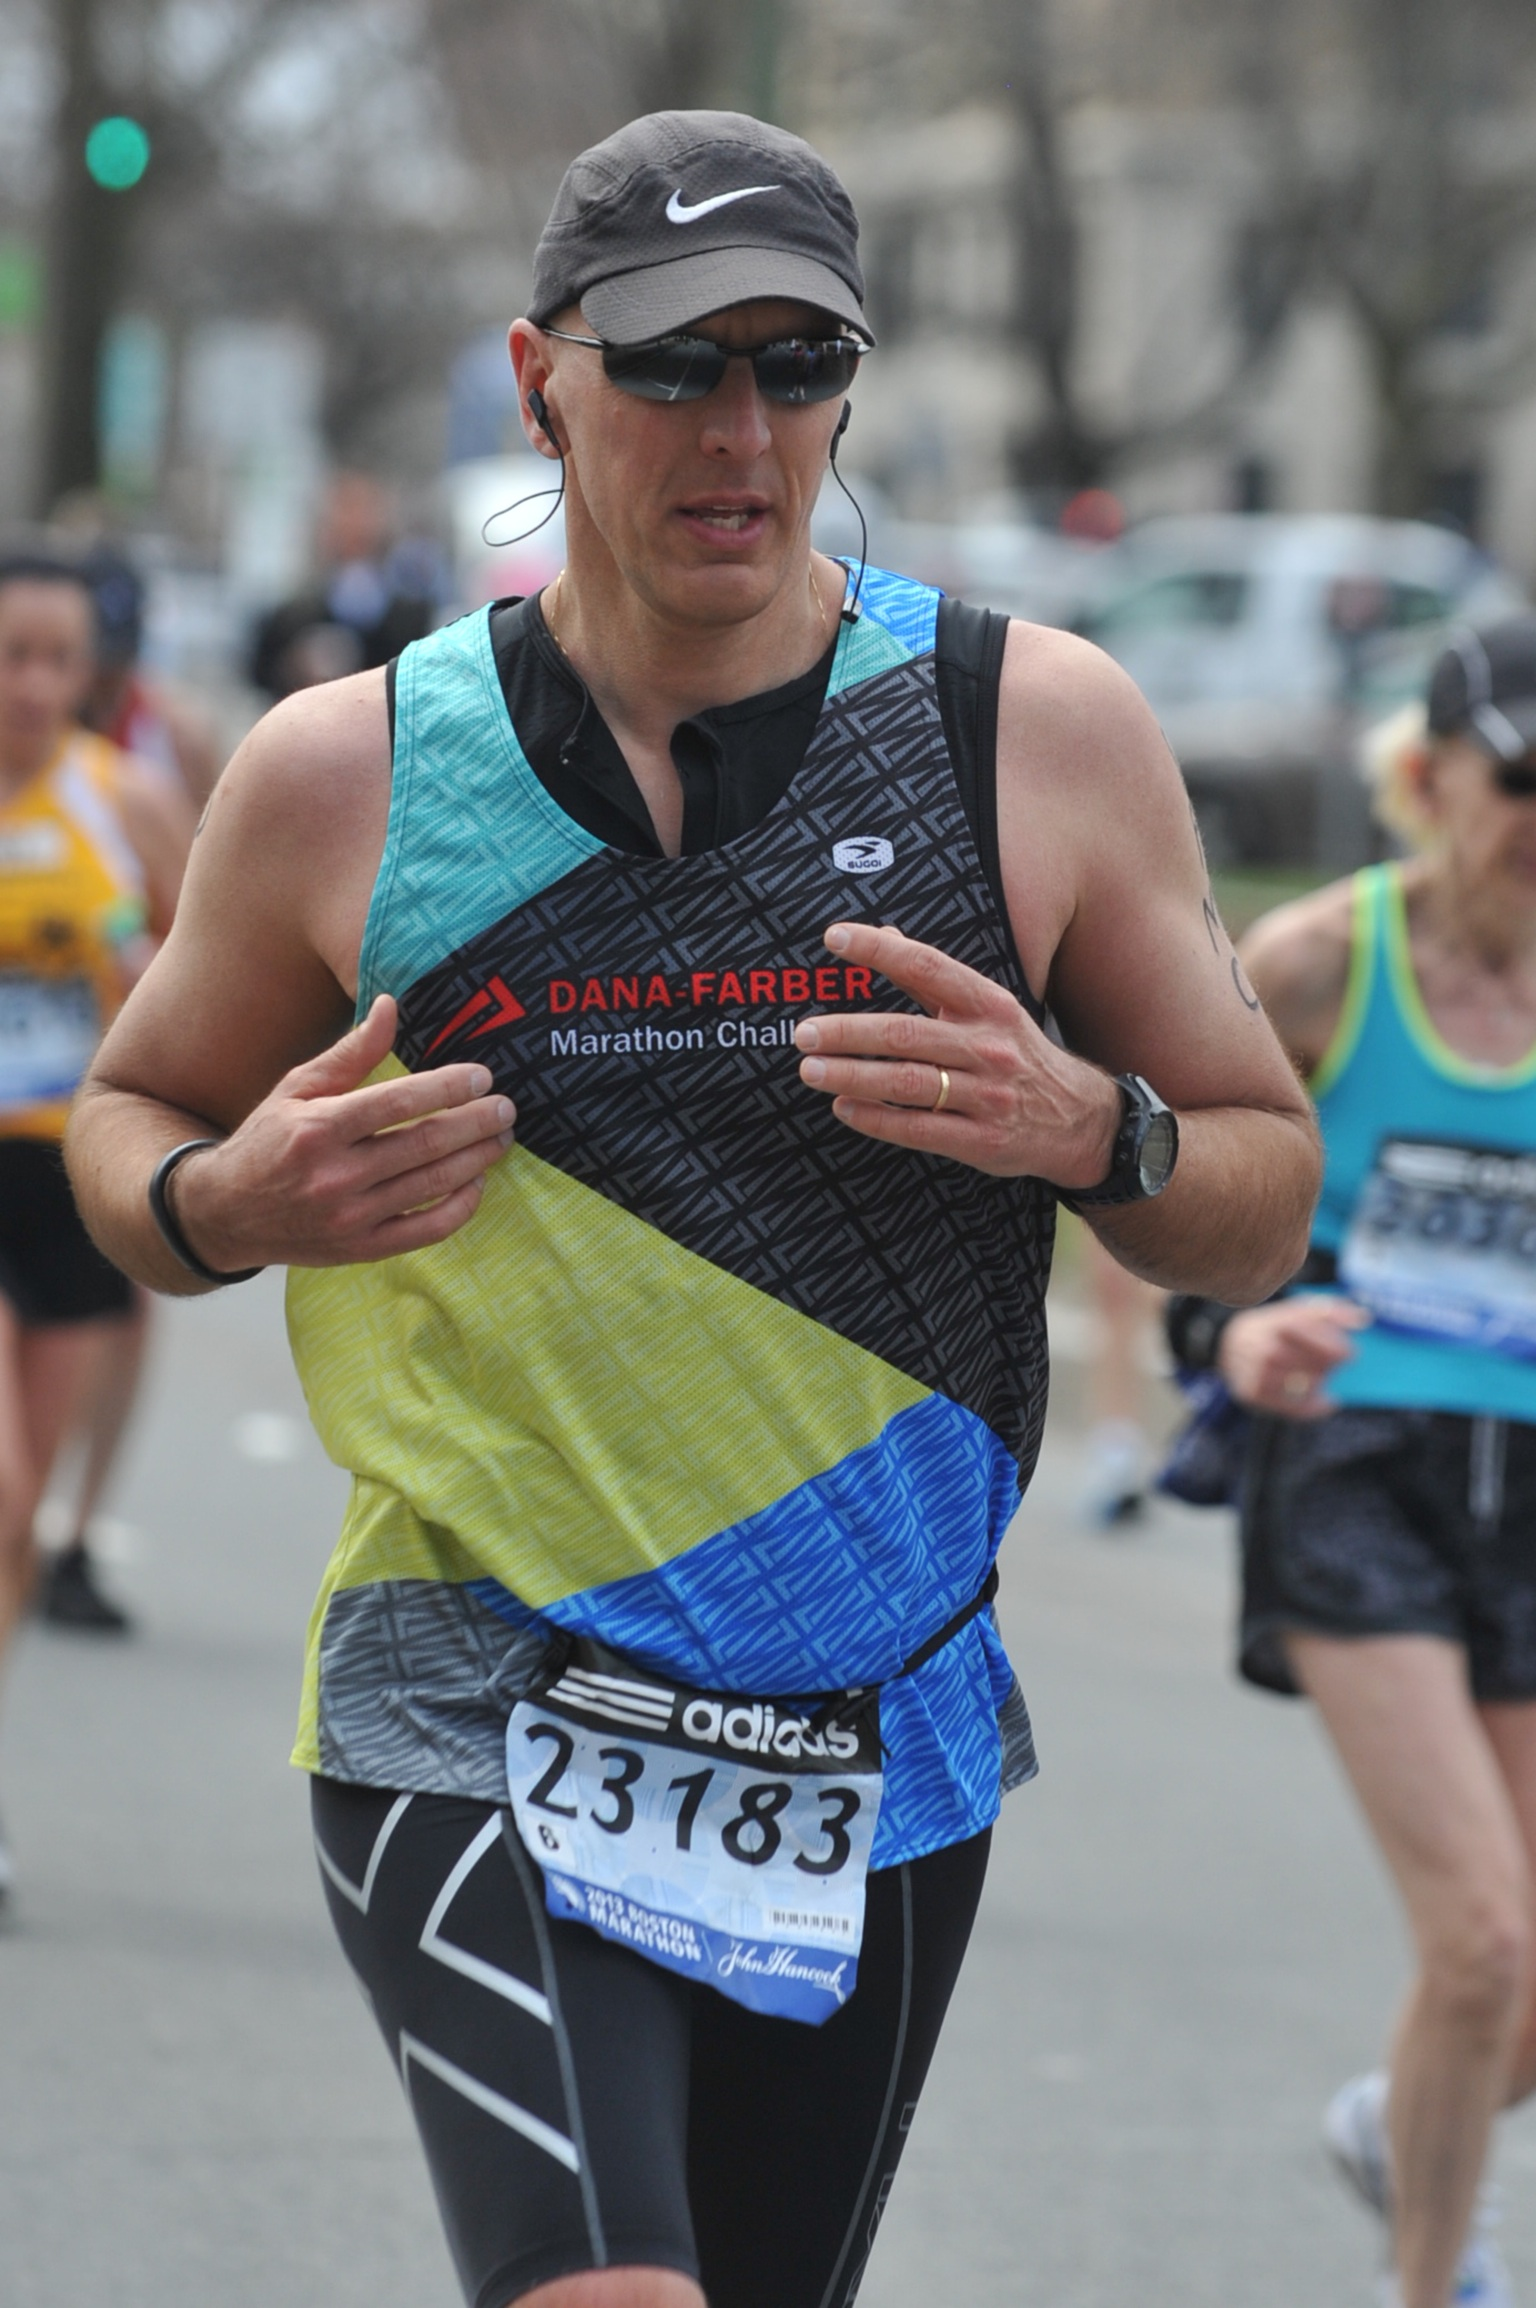 Fortier, who ran the Boston Marathon in 2013, will compete again this year.